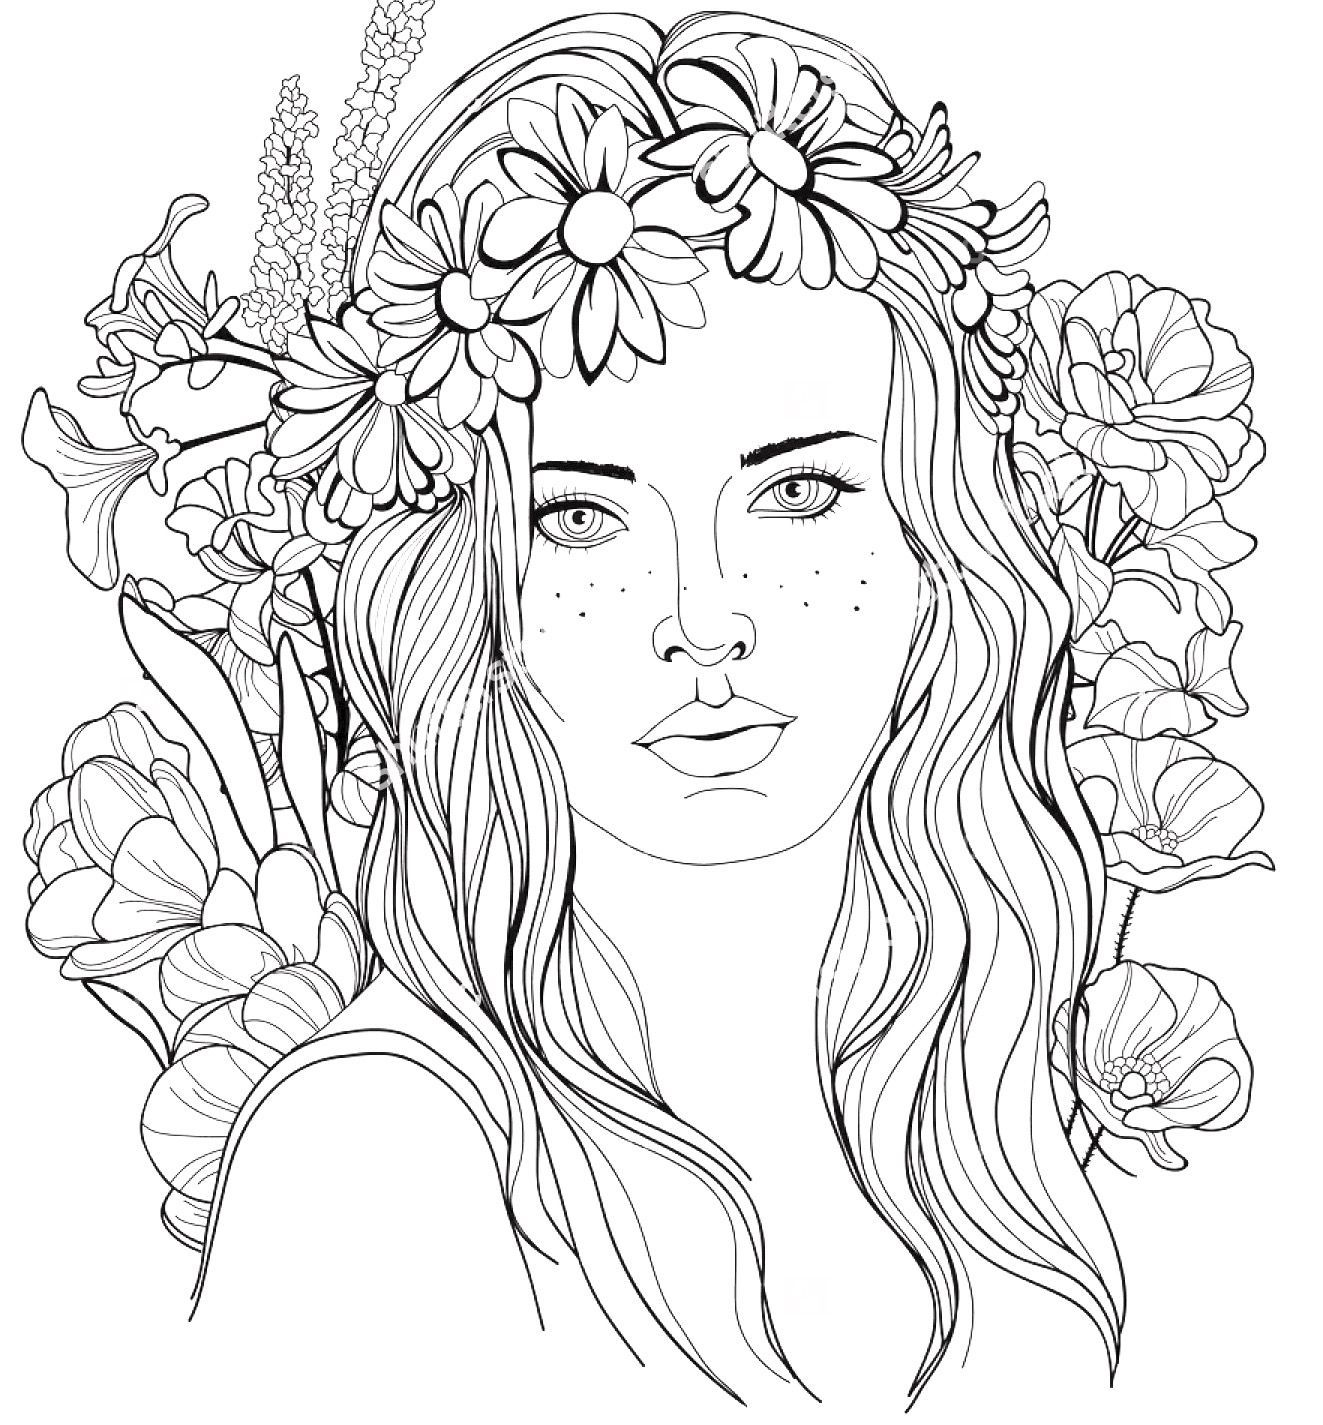 - Pin By Sammie R On Coloring Coloring Pages, People Coloring